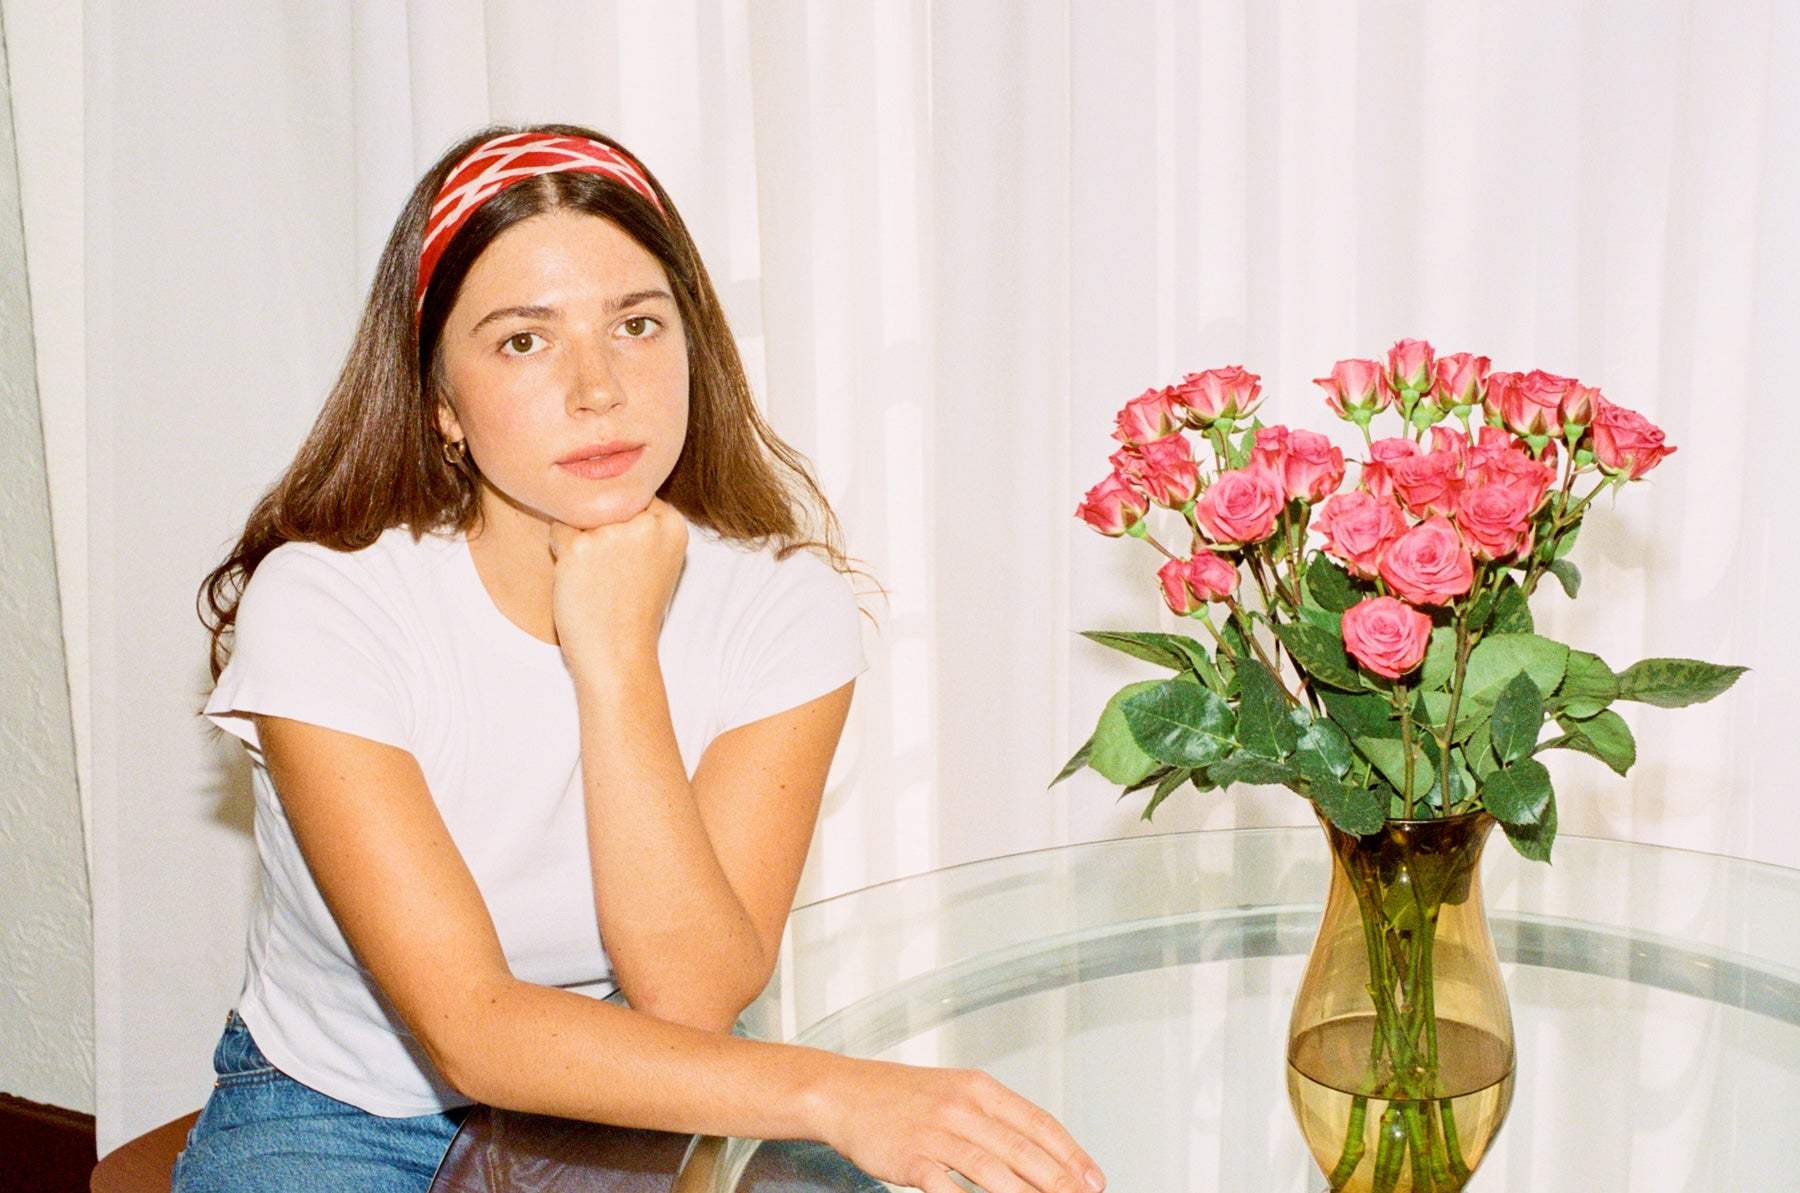 Ariel Maroko sitting at a table with flowers